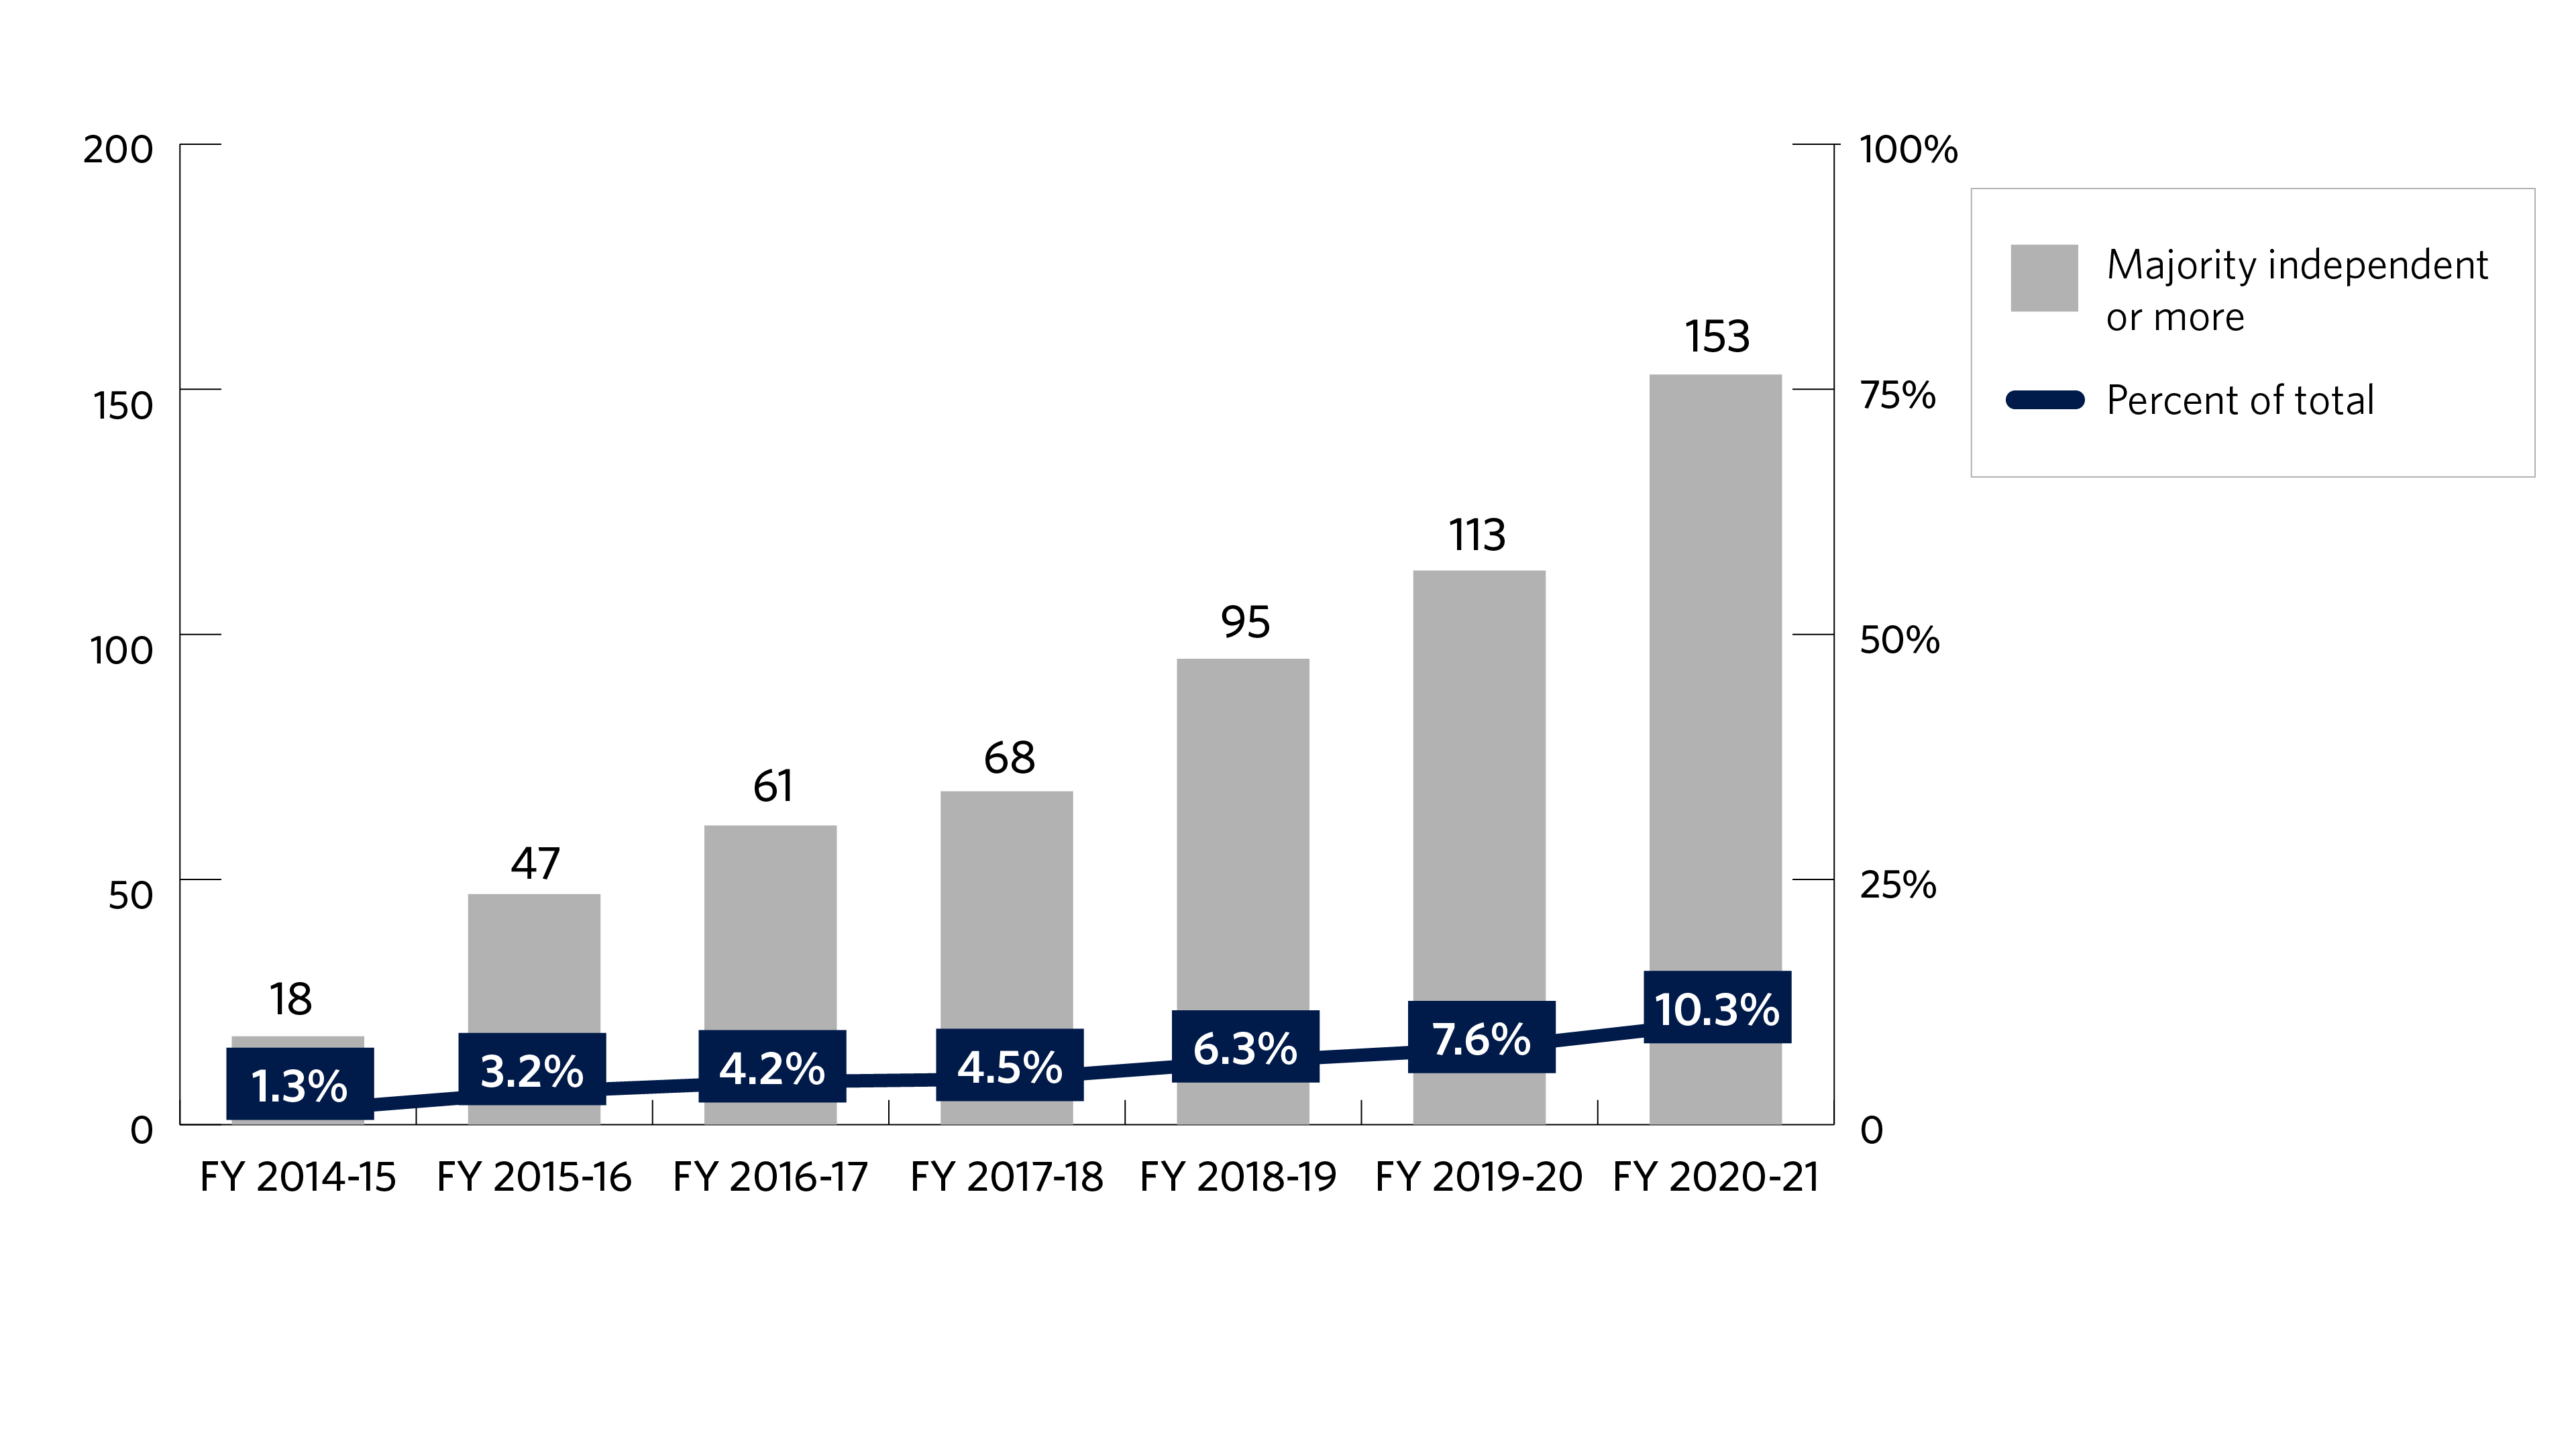 Bar chart showing the number and percentage of Japanese companies with majority independent boards in the Tokyo Stock Exchange 1st Section from fiscal year 2014-2015 to fiscal year 2018-2019. The number of Japanese companies with majority independent boards is 74 in fiscal year 2014-2015, 90 in fiscal 2015-2016, 108 in fiscal year 2016-2017, 121 in fiscal year 2017-2018 and 153 in fiscal 2018-2019. The percentage of Japanese companies with majority independent boards in the Tokyo Stock Exchange 1st Section is 5.1% in fiscal year 2014-2015, 6.2% in fiscal year 2015-2016, 7.4% in fiscal year 2016-2017, 8.2% in fiscal year 2017-2018 and 10.3% in fiscal year 2018-2019.